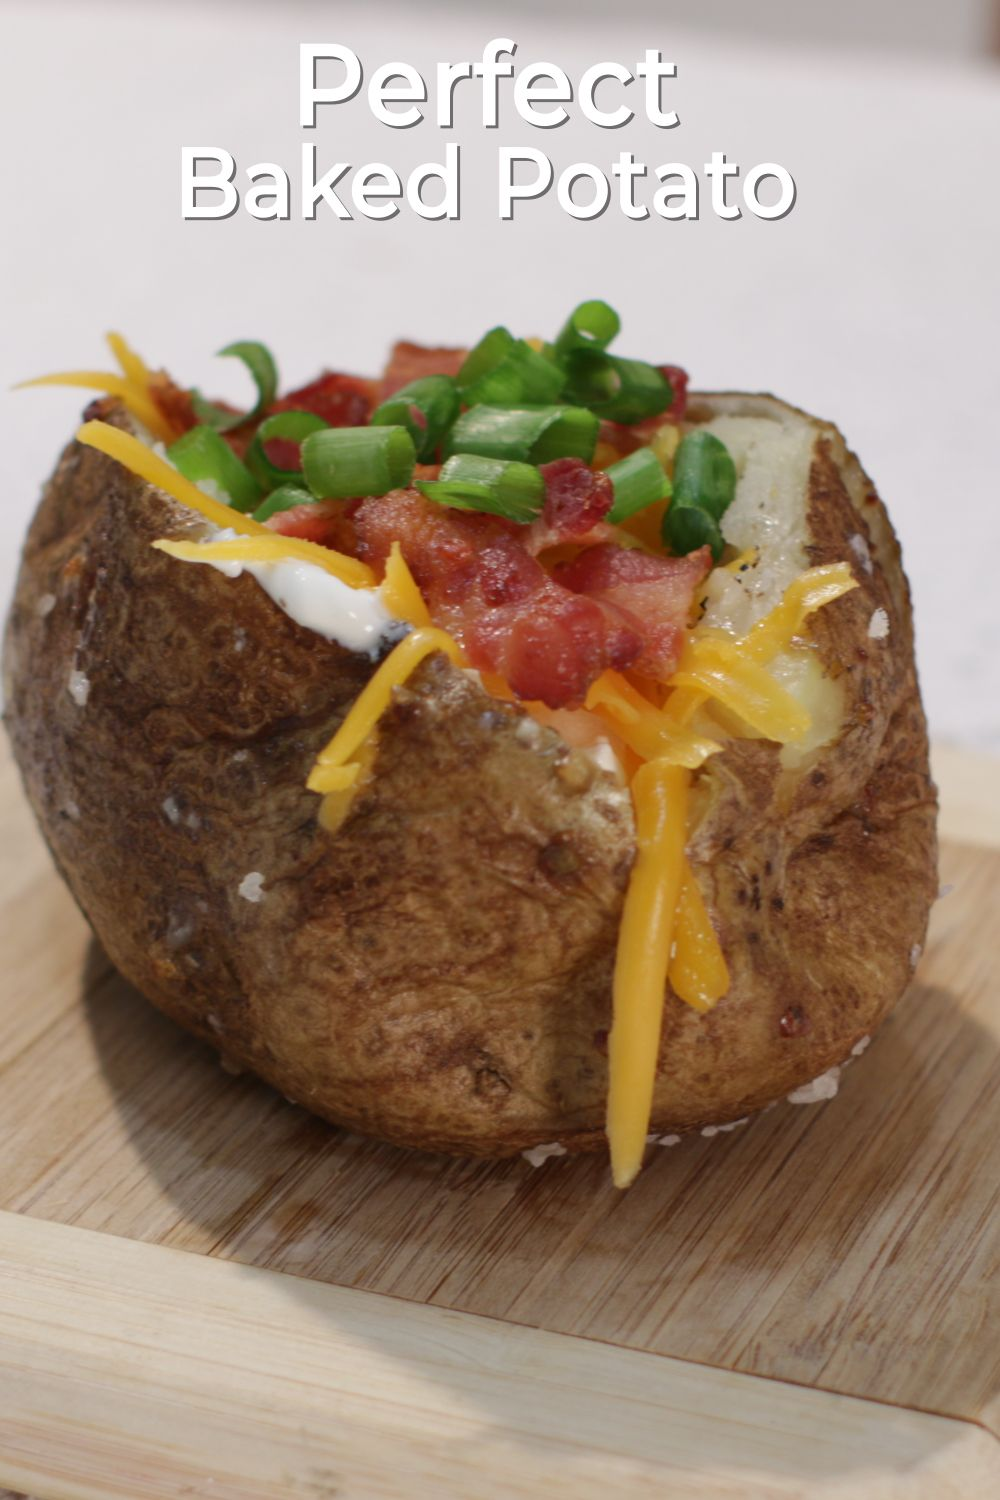 Perfect Baked Potato Recipe In The Kitchen With Matt Recipe In 2020 Baked Potato Recipes Potato Recipes Recipes